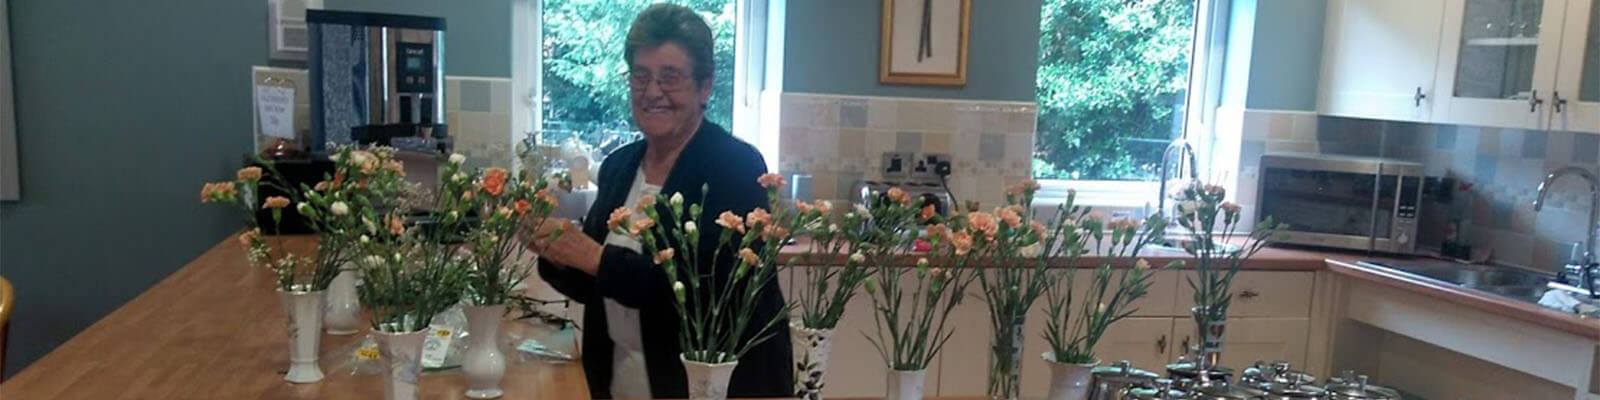 Flower arranging at Branksome hall drive